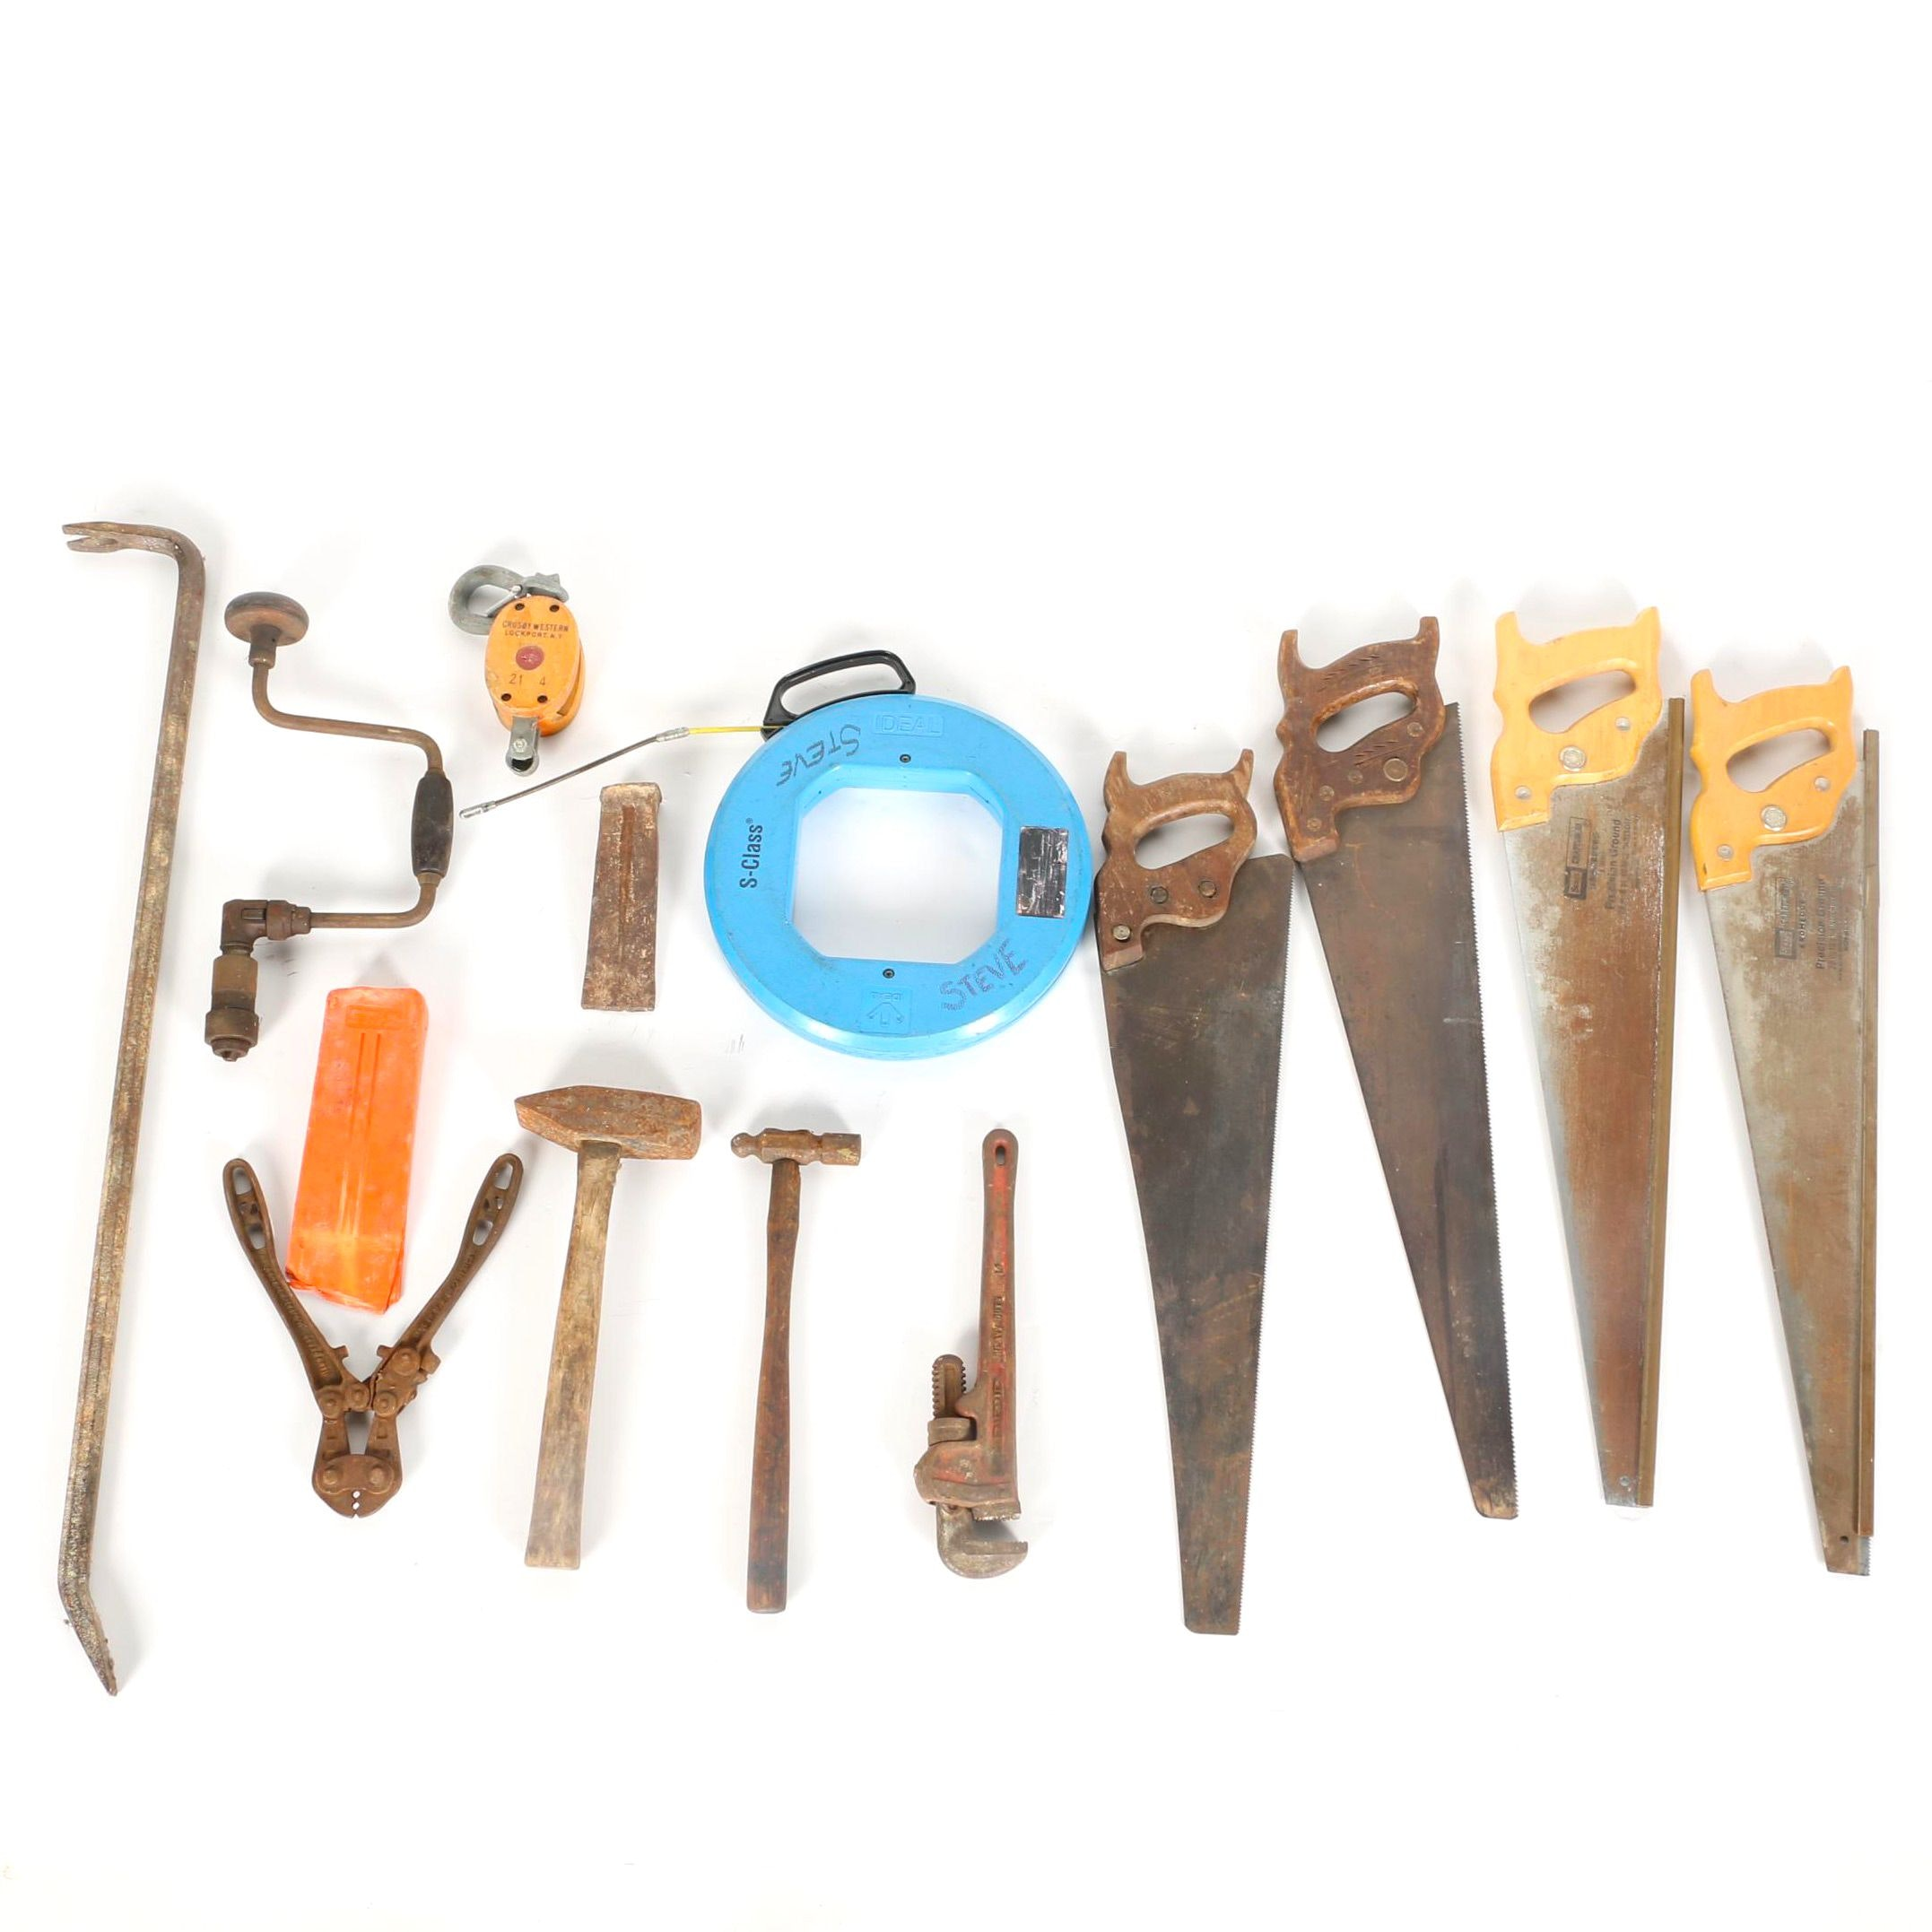 Assortment of Saws and Hand Tools